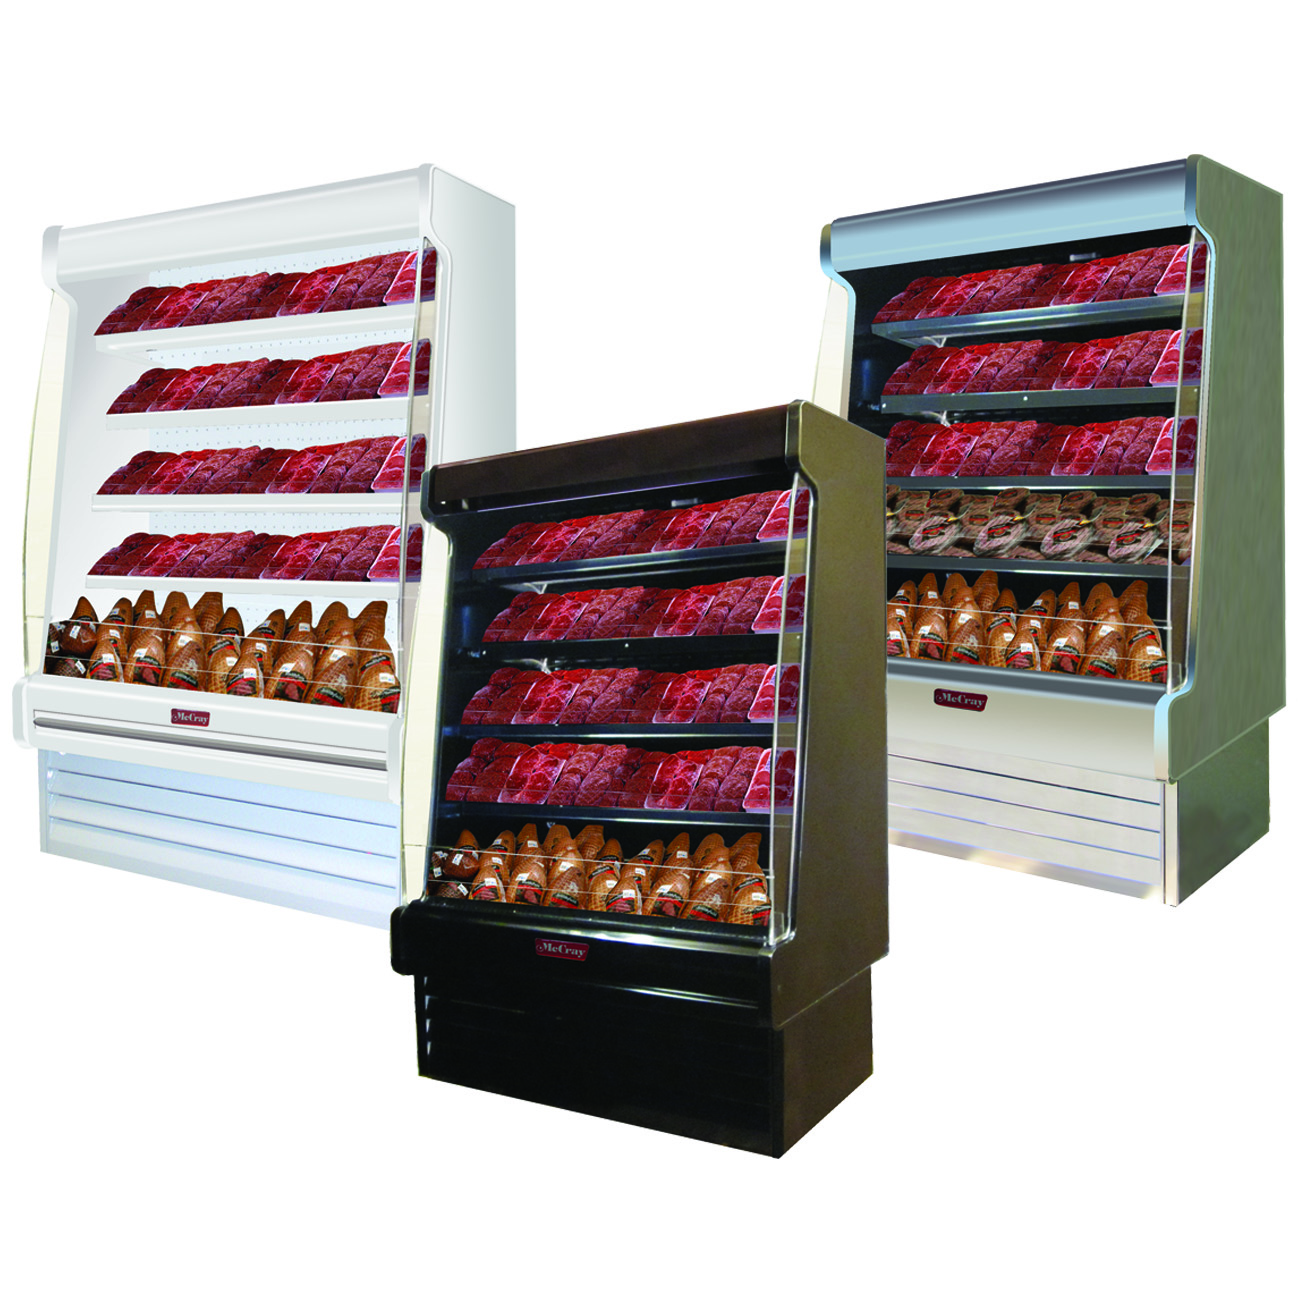 Howard-McCray SC-OM35E-5S-B-LED merchandiser, open refrigerated display